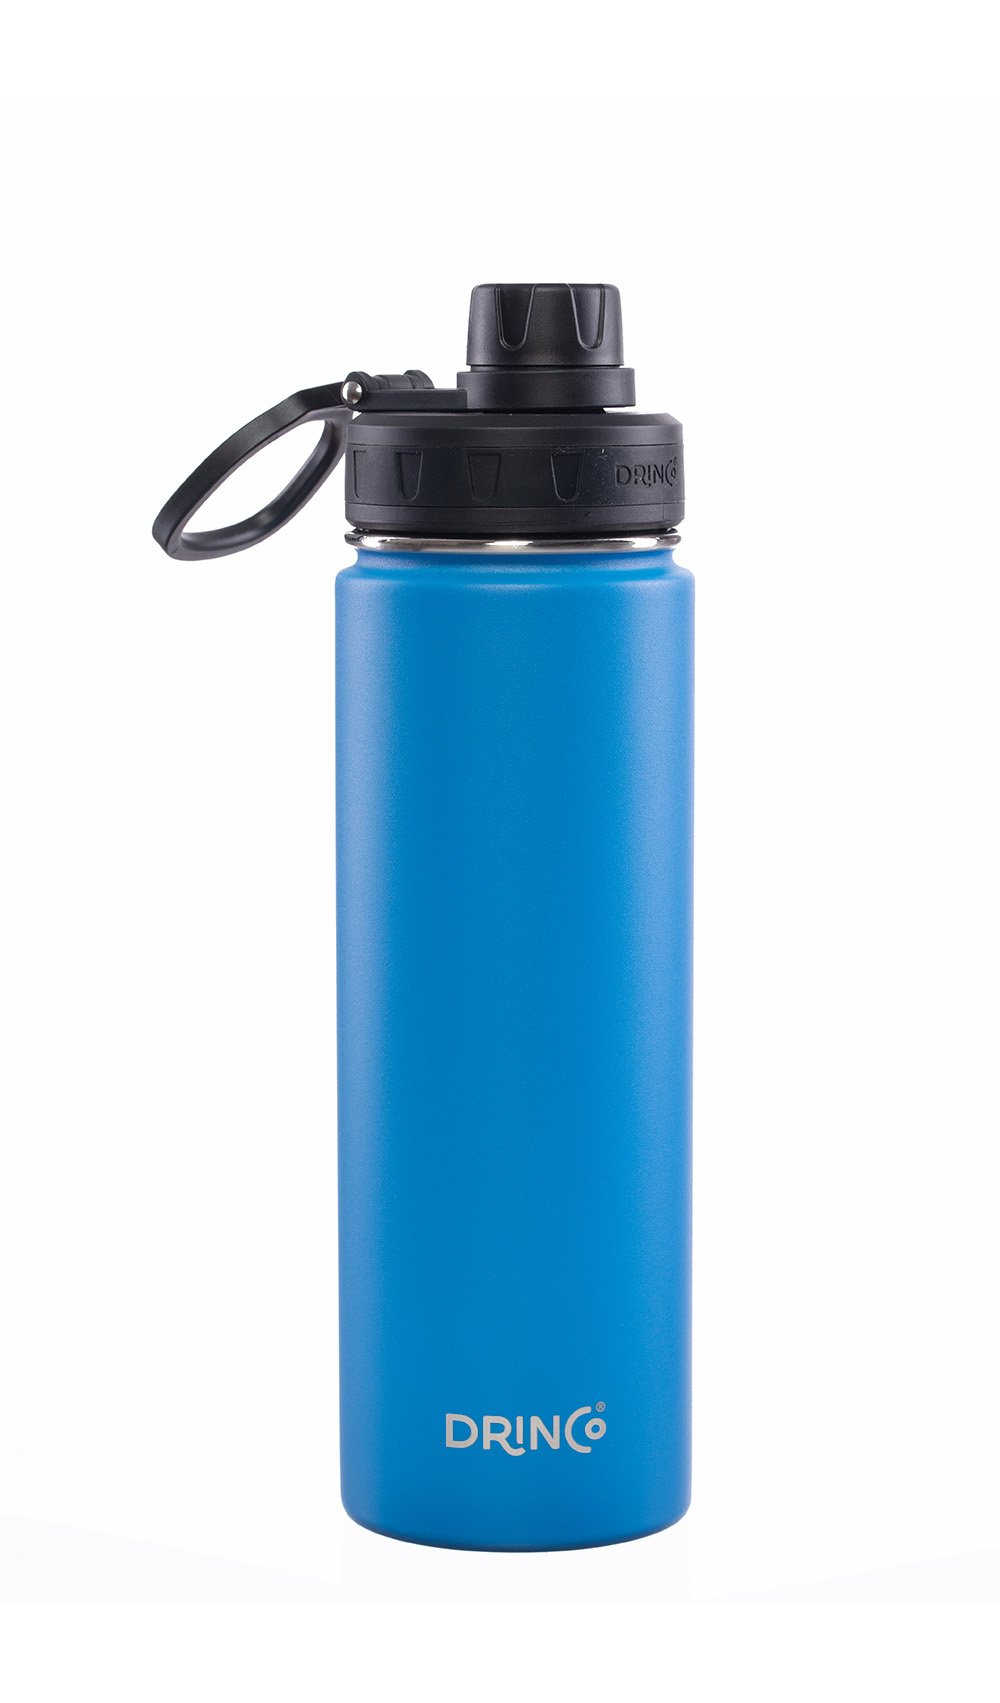 Drinco Vacuum Insulated Stainless Steel Water Bottle, with Spout Lid, Wide Mouth, Leak Proof, Powder Coated, Double Wall, 18/8 Grade, Stainless Steel Water Bottle, 20oz (Royal Blue)